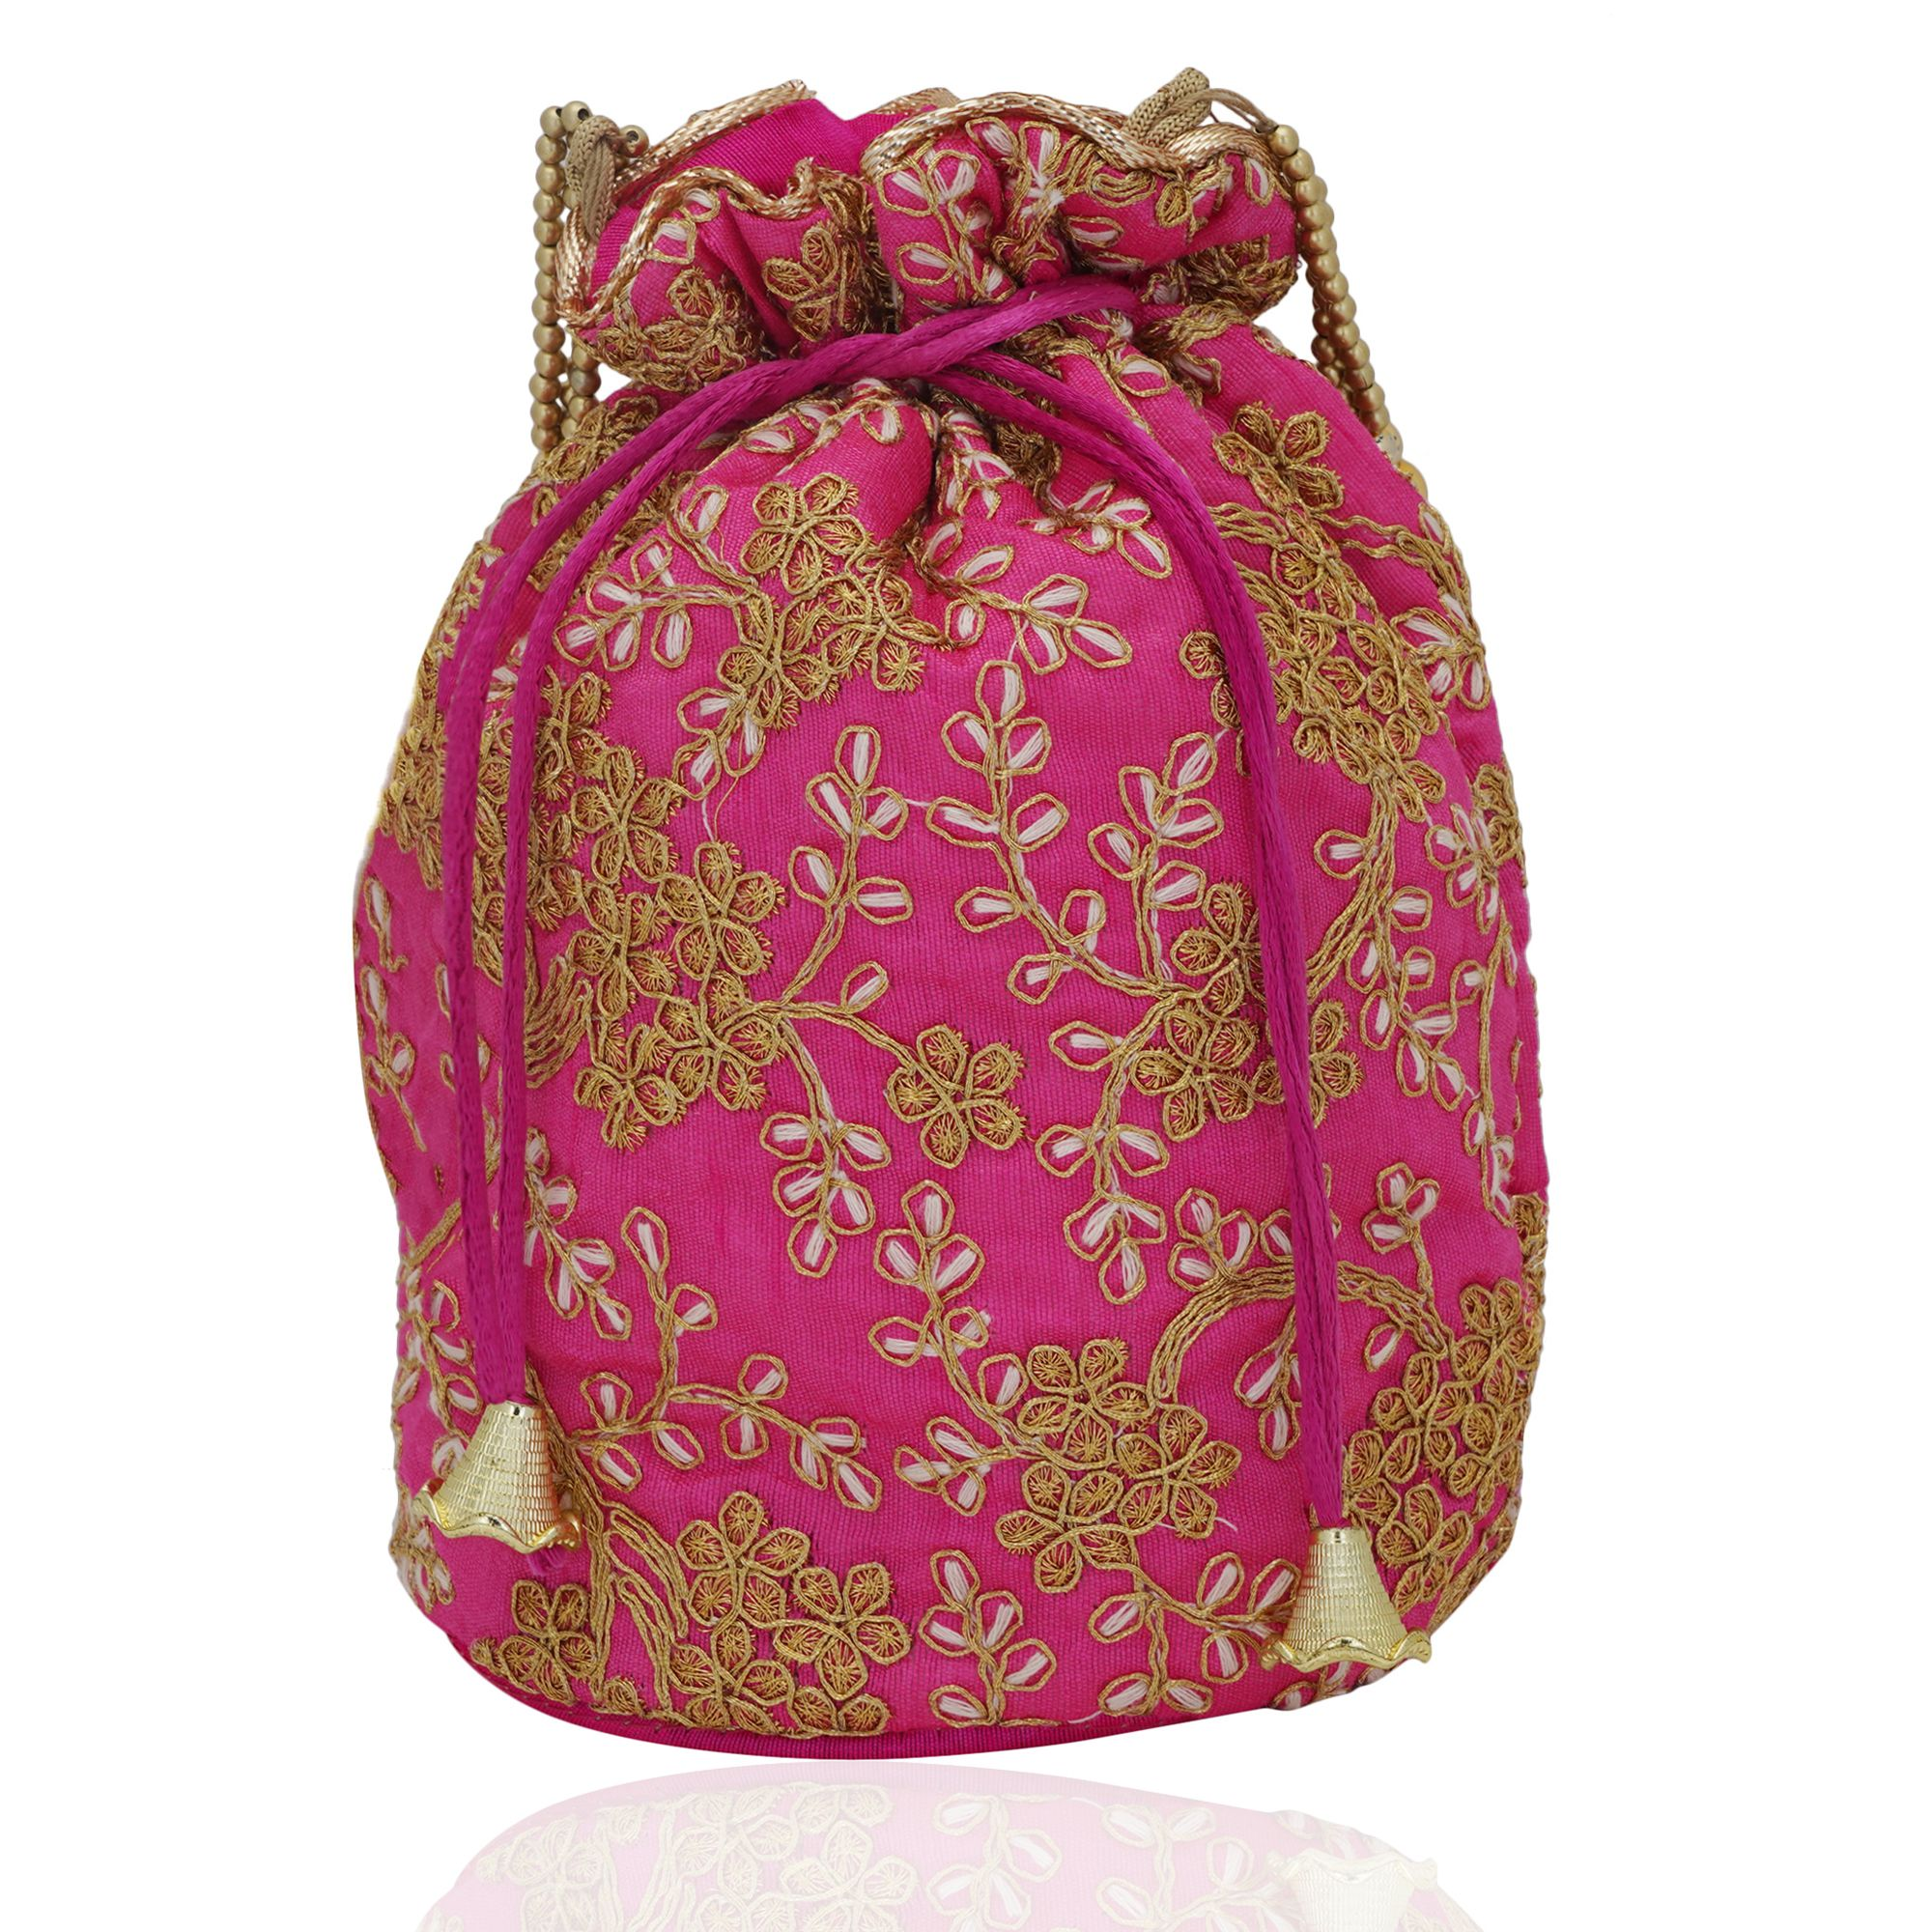 Pink Embroidered Potli Bag in Golden Zari and Beads